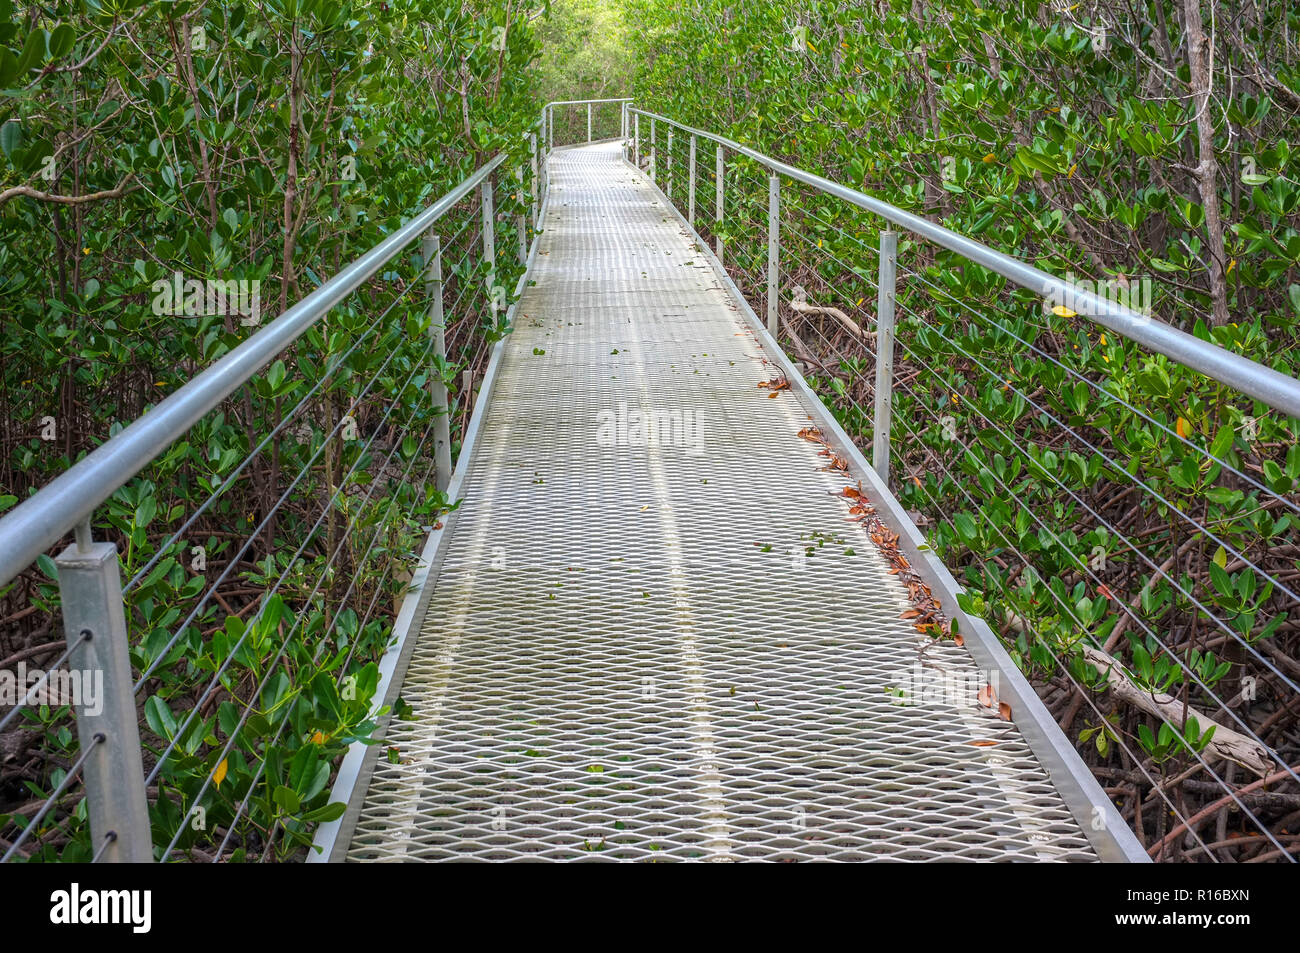 the-east-point-mangrove-board-walk-in-the-suburb-of-darwin-city-in-the-northern-territory-of-australia-R16BXN.jpg